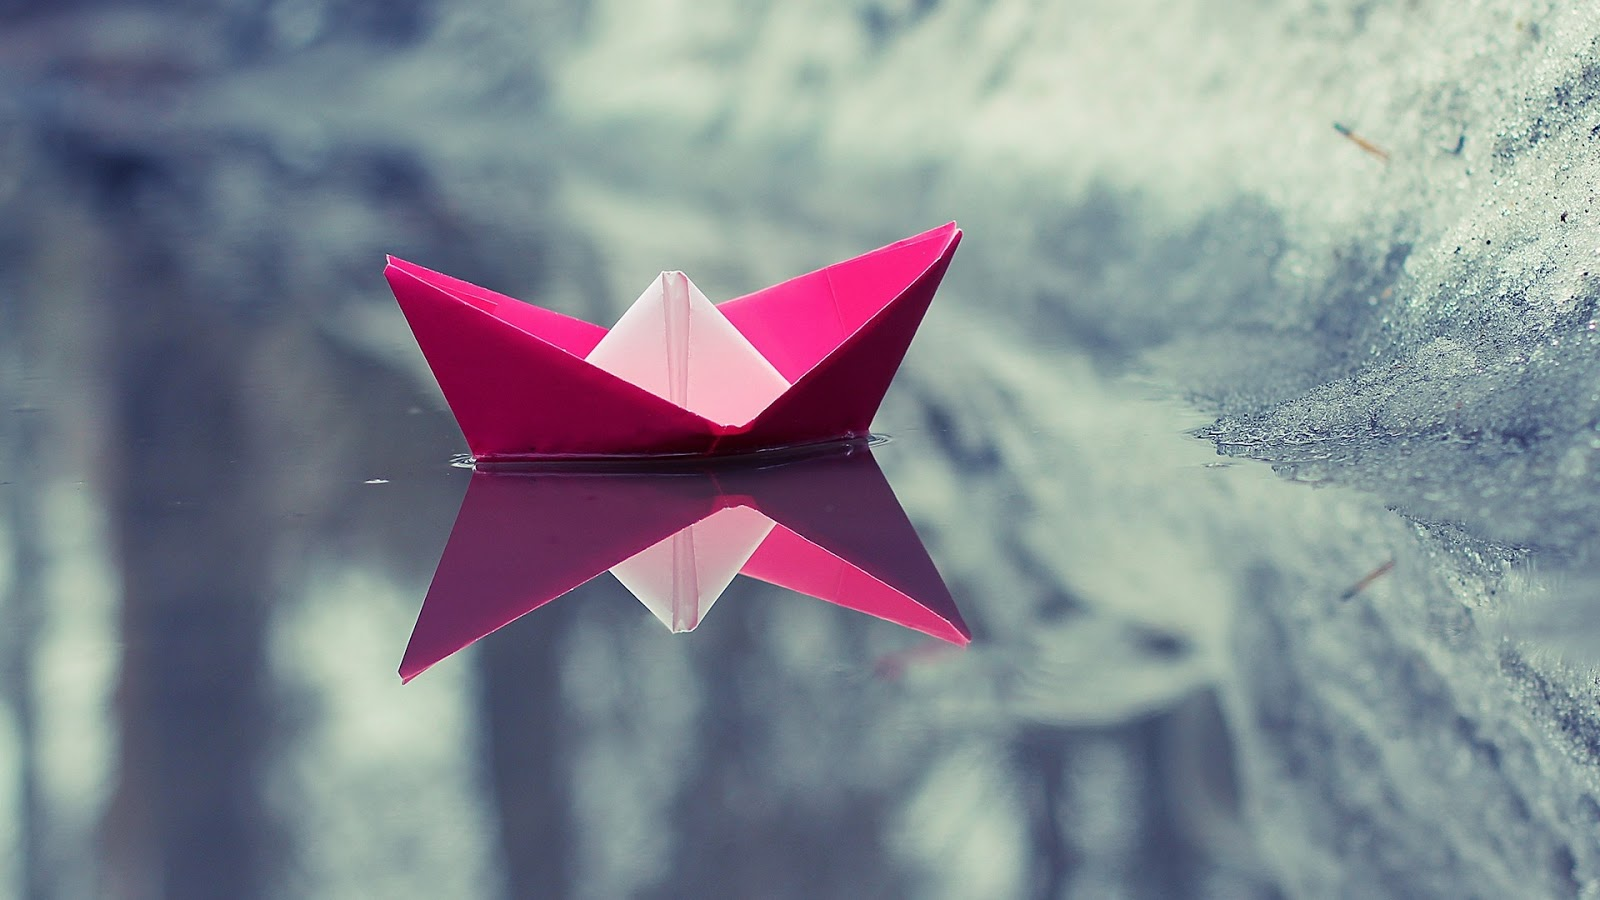 origami free wallpaper - photo #41